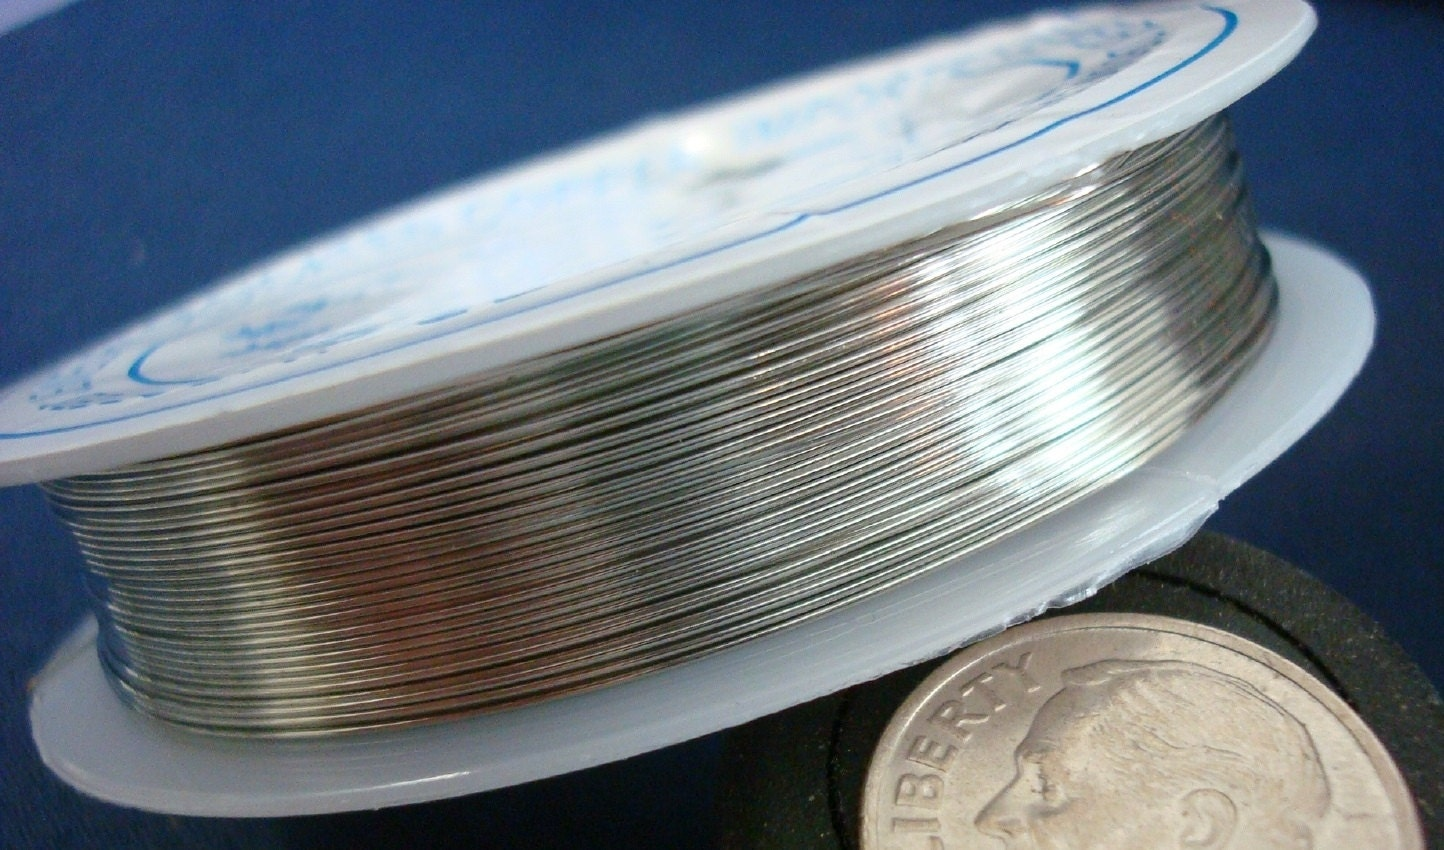 26ga Silver plated copper round wire .4mm .015 create wire wrapped ...